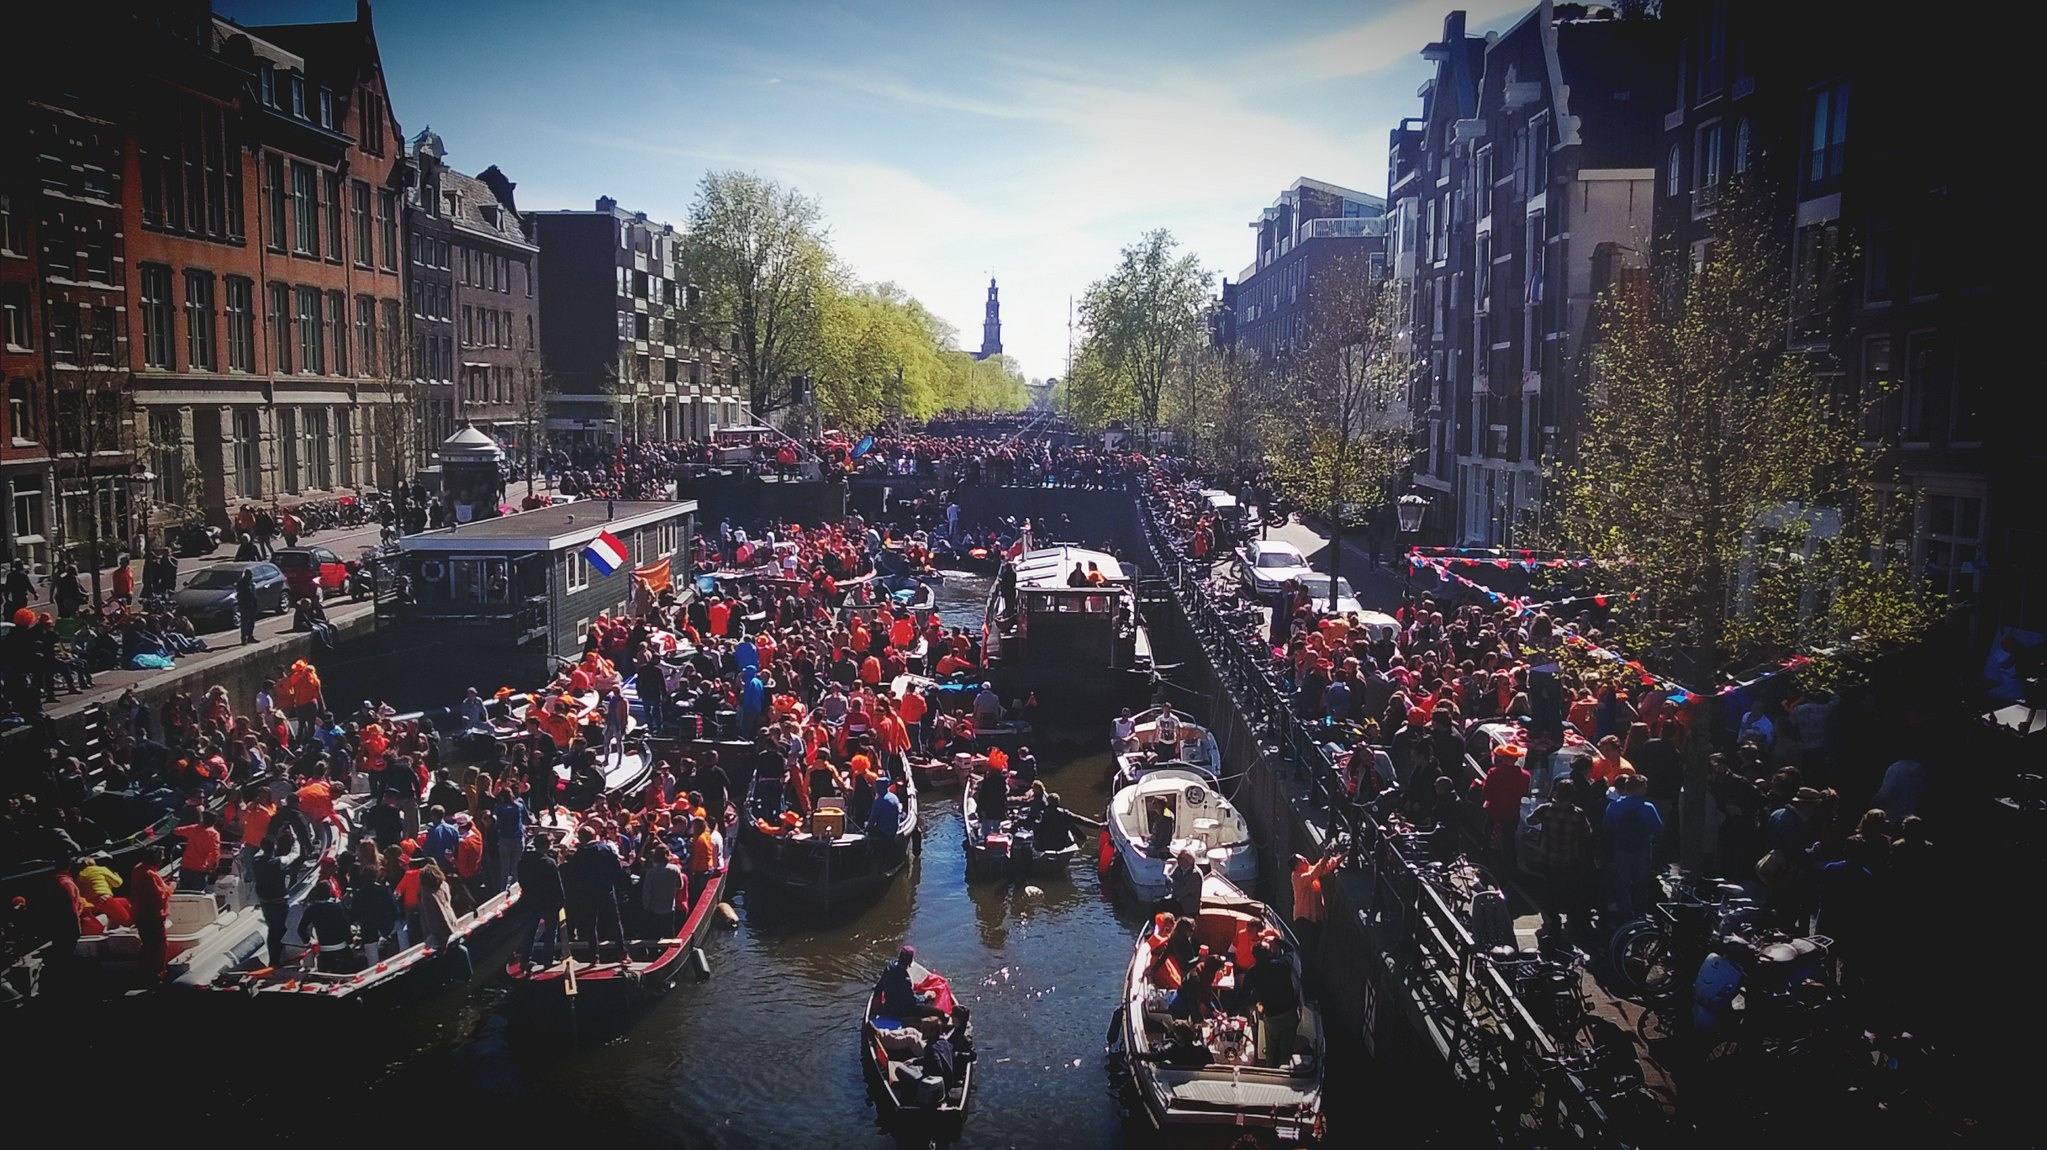 Koningsdag 2015 | out and about | BakerlooTheReal | Flickr